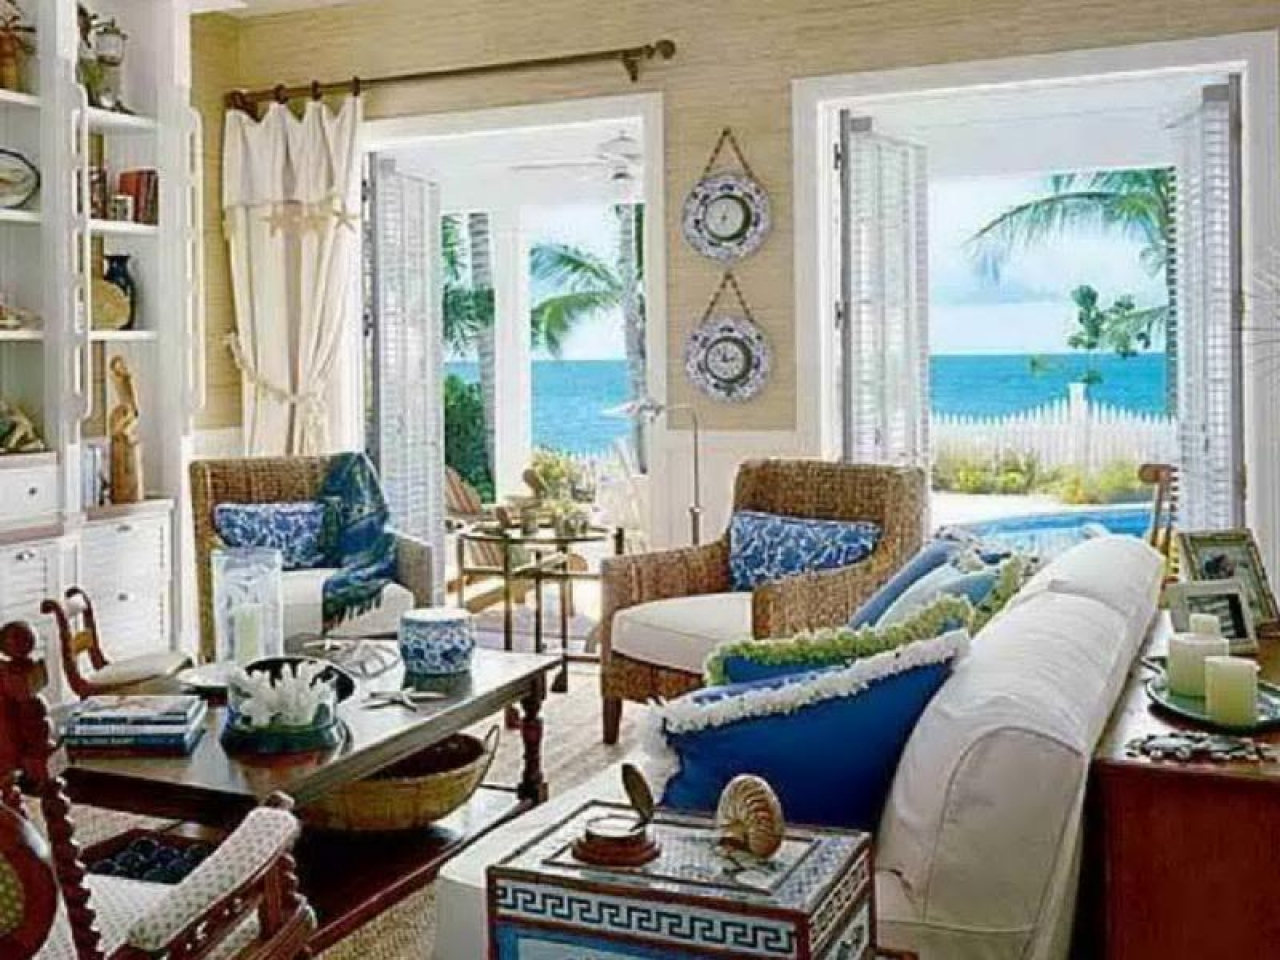 Coastal living beach house style beach style living room ideas beach style home - Beach style living room ...